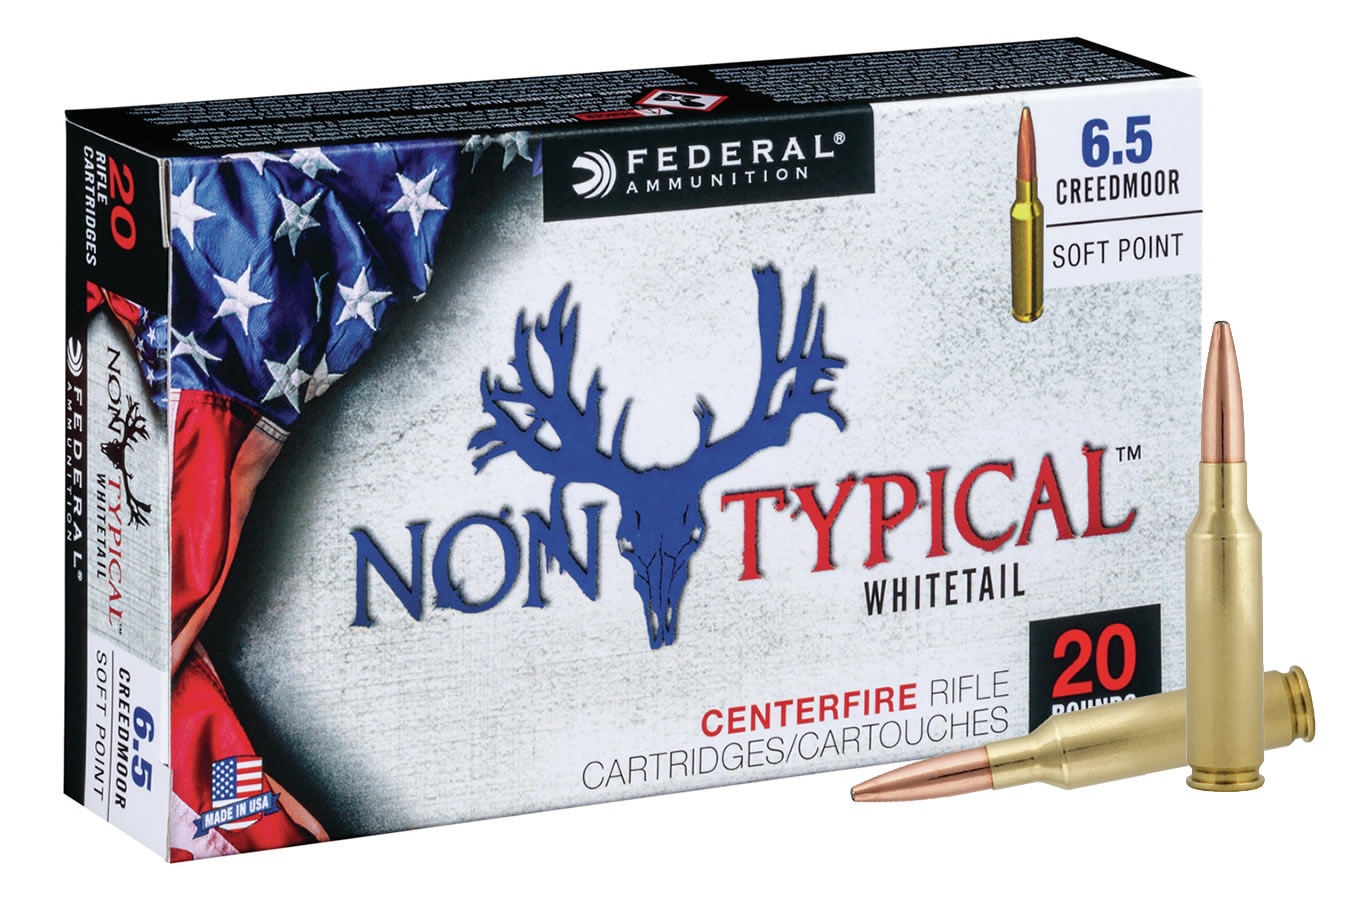 6.5 CREEDMOOR 140 GR SP NON-TYPICAL